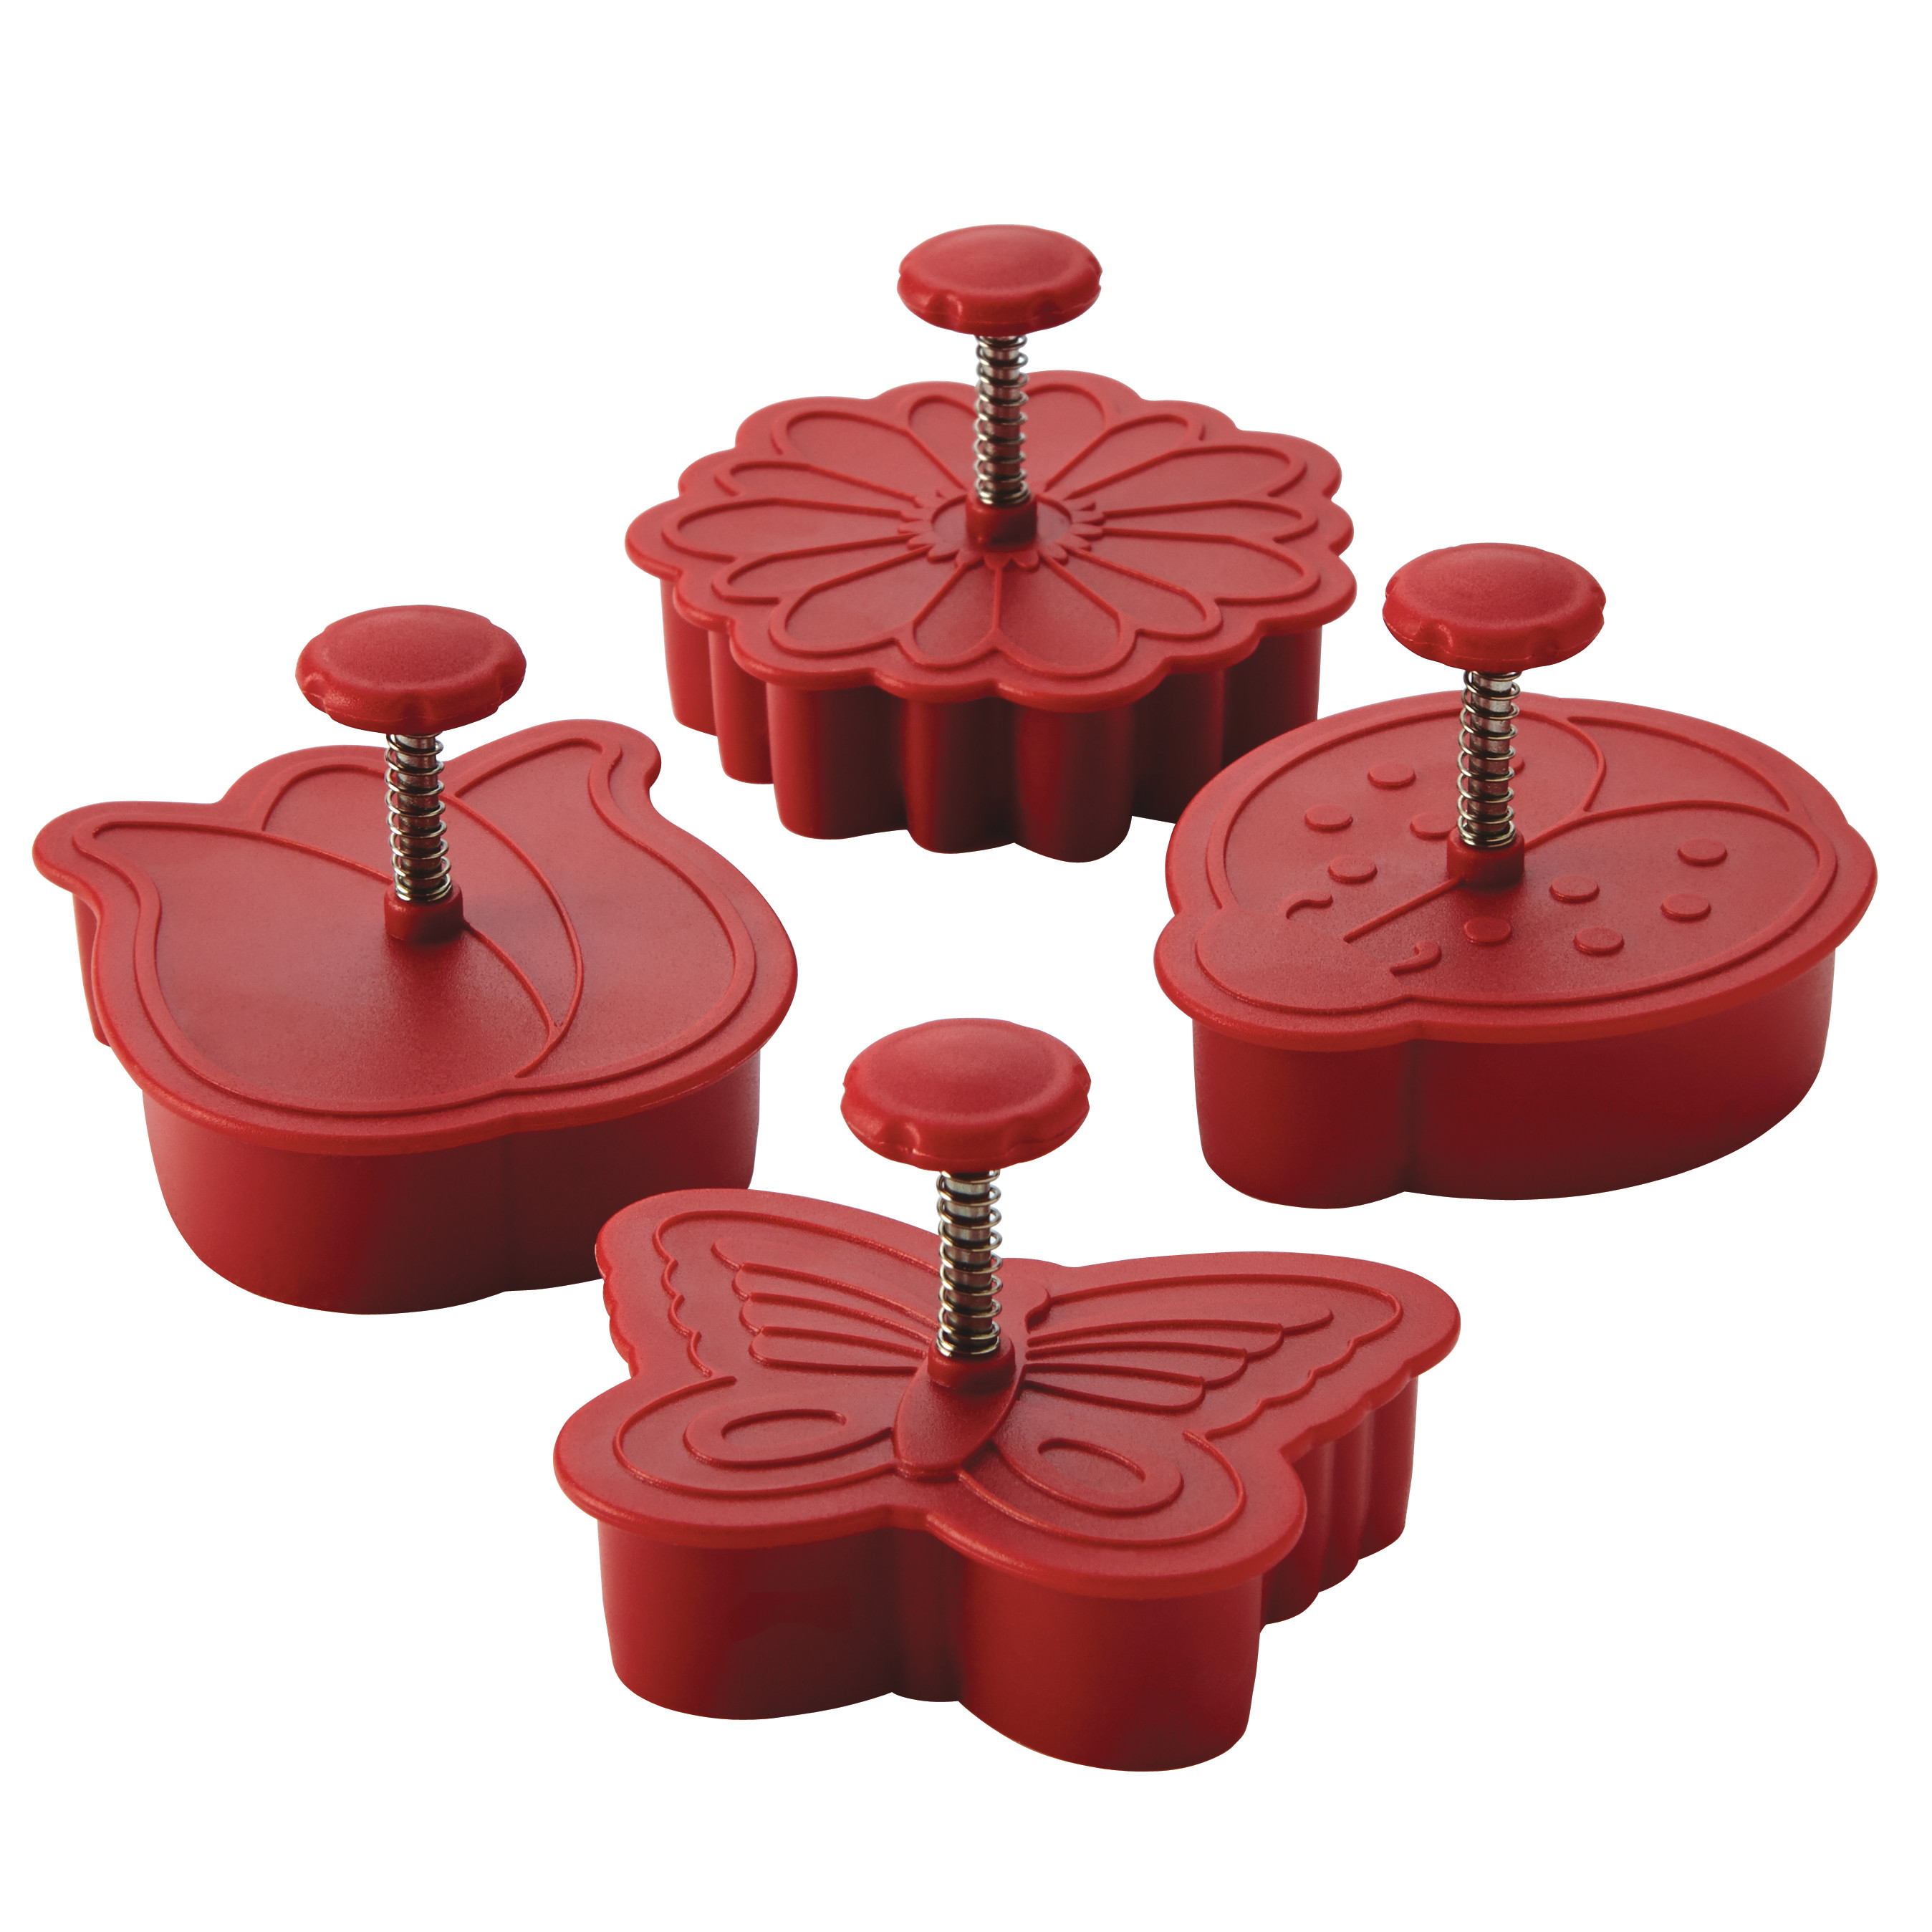 Cake Boss Decorating Tools 4-Piece Springtime Fondant Press Set, Red